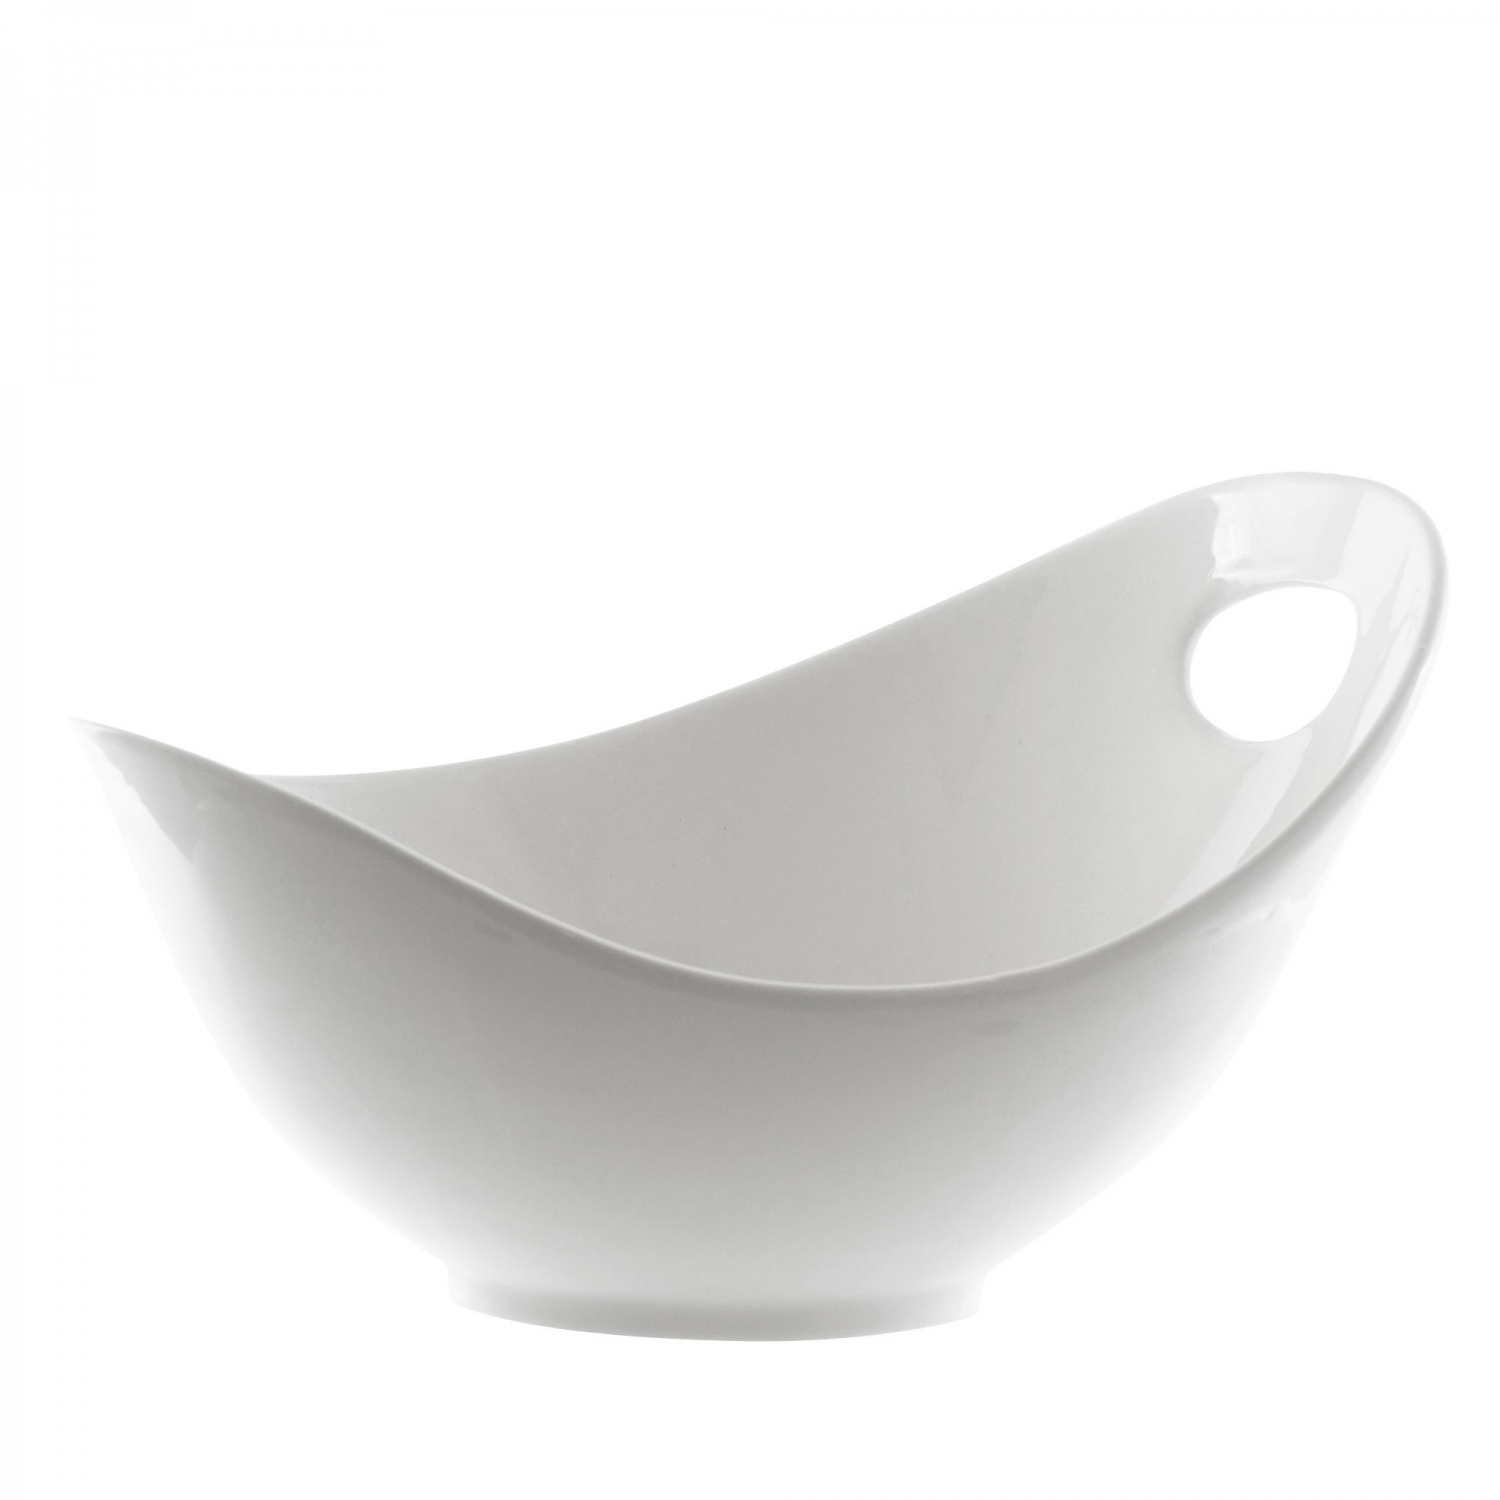 10 Strawberry Street WTR-10FBWL Whittier Fruit Bowl with Cut Out 34 oz.